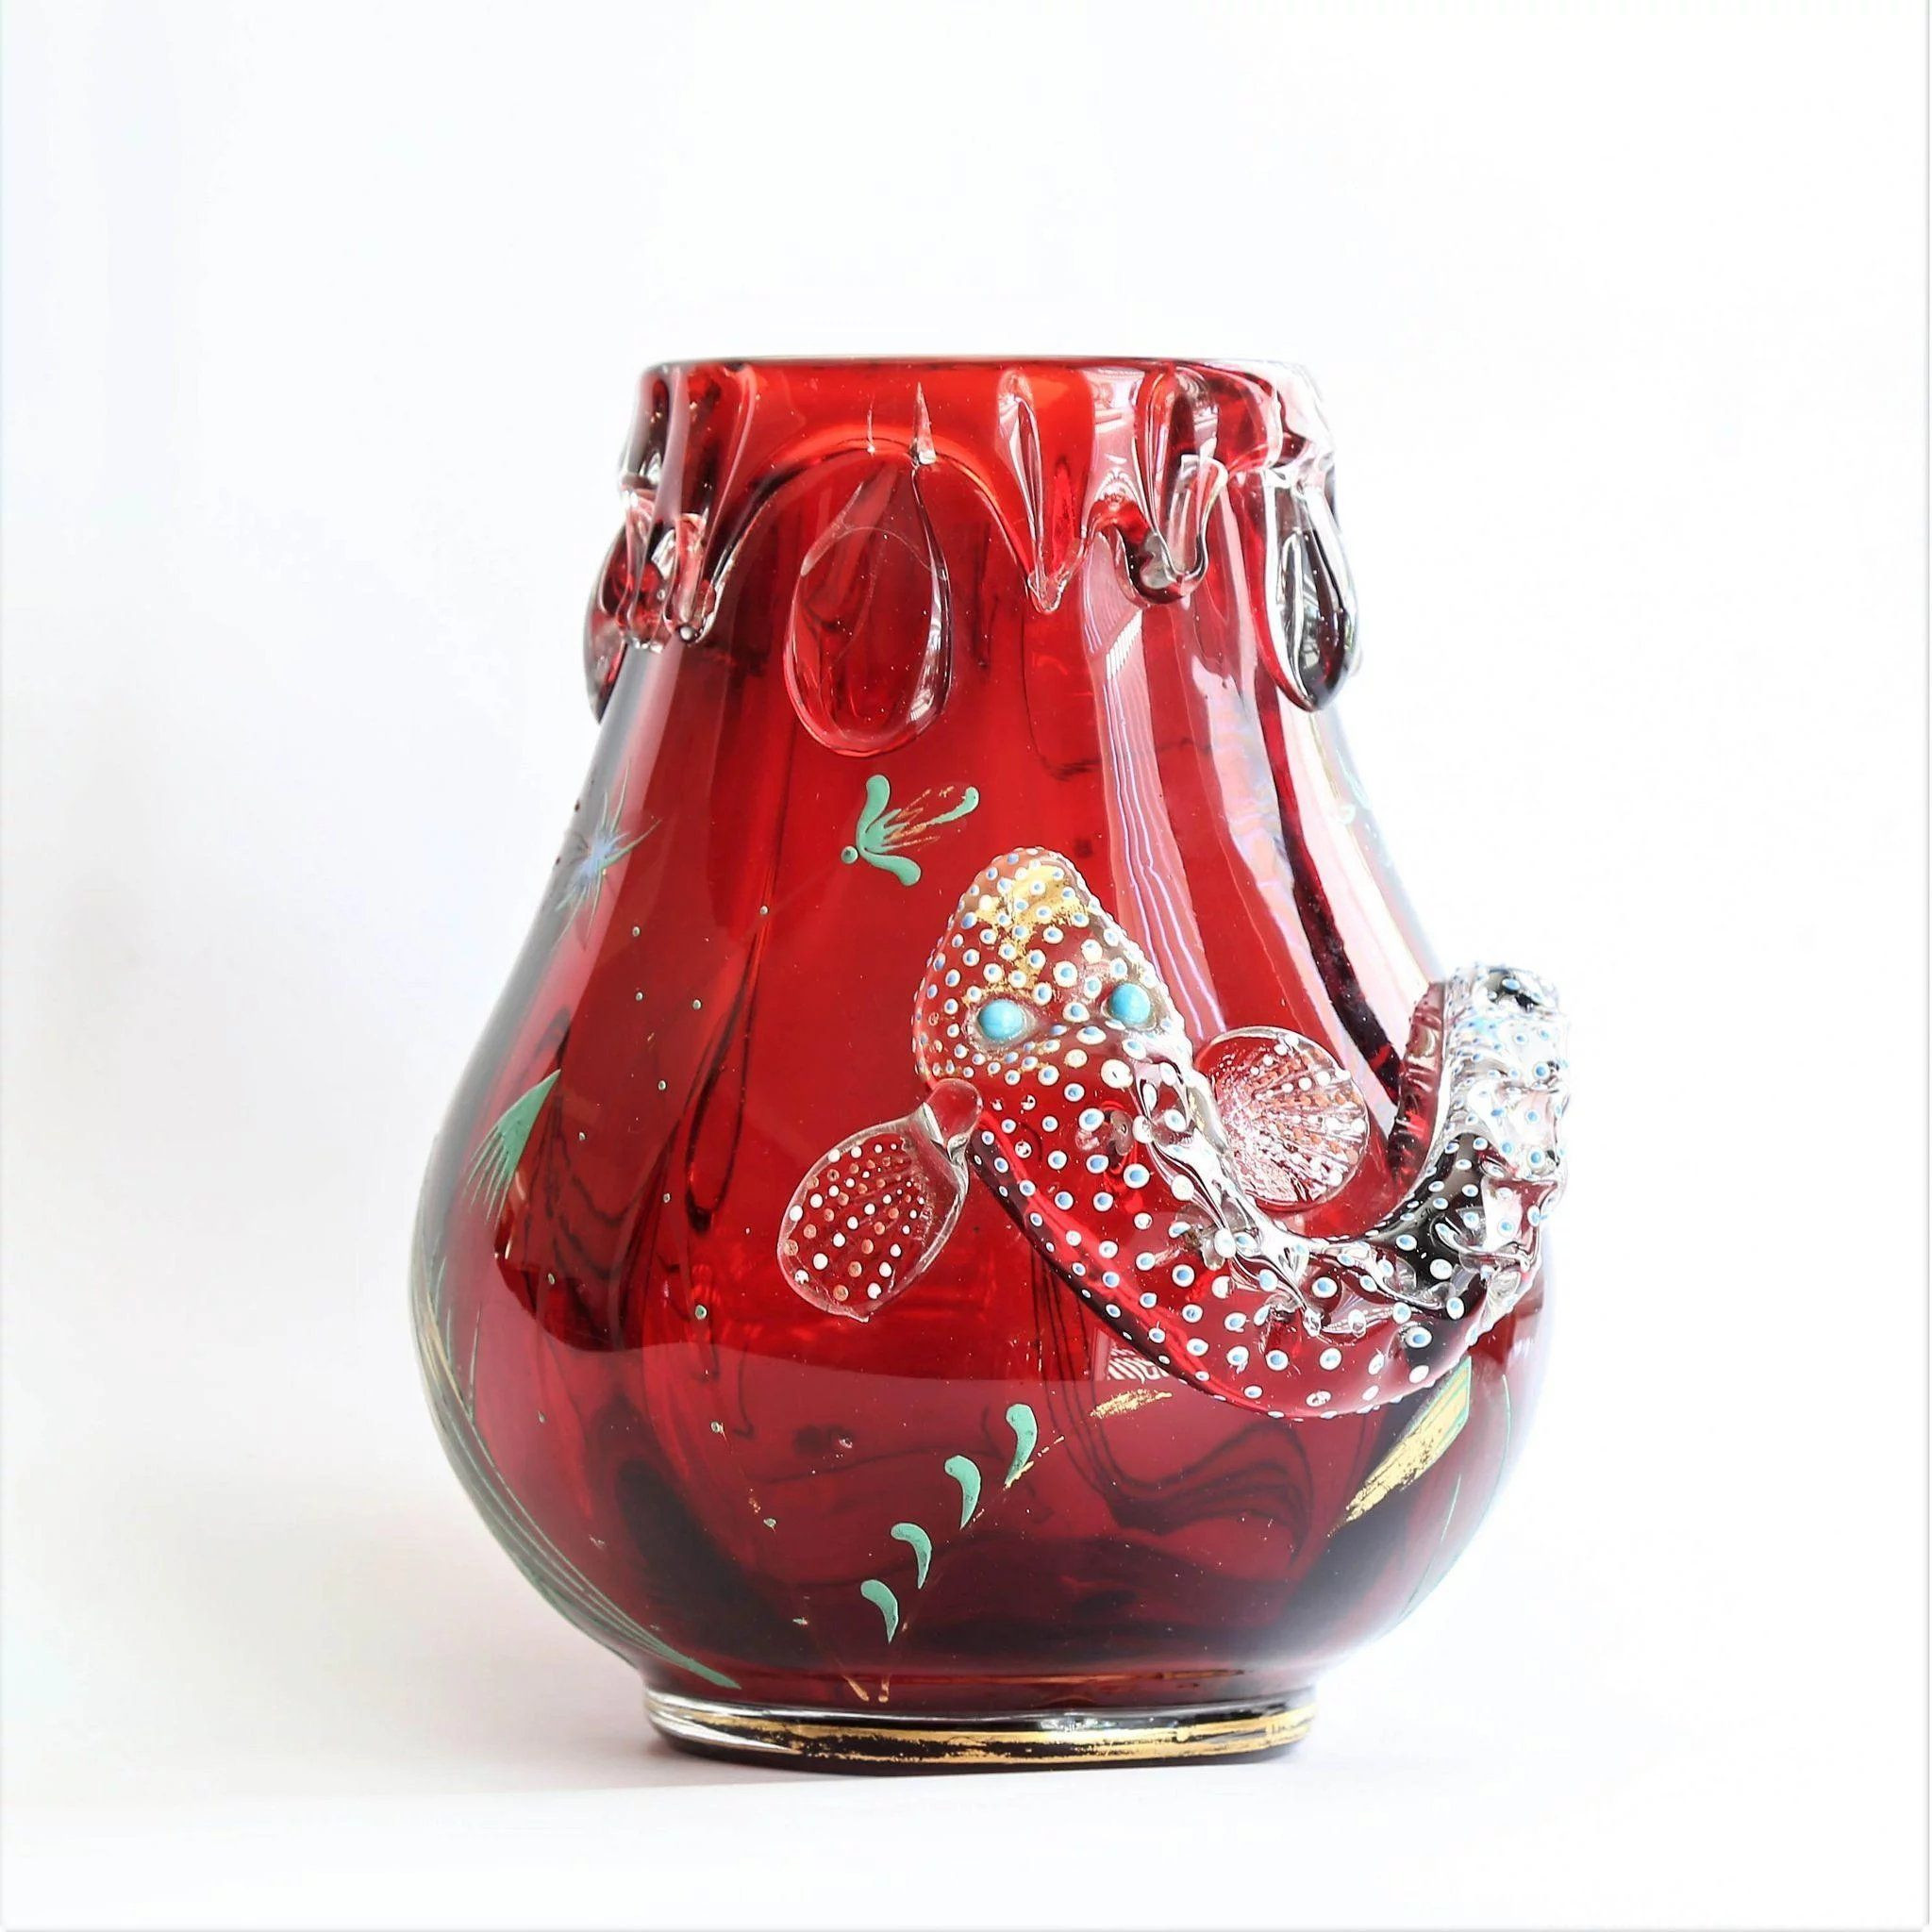 Art Glass Vases for Sale Of Rare Circa 1900 Moser Ruby Red Vase with Enameled Fish In 2018 Pertaining to Title Rare Circa 1900 Moser Ruby Red Vase with Enameled Fish Price 995 Usd Category Antiquesby Period Styleart Nouveauantique Art Glass Antique